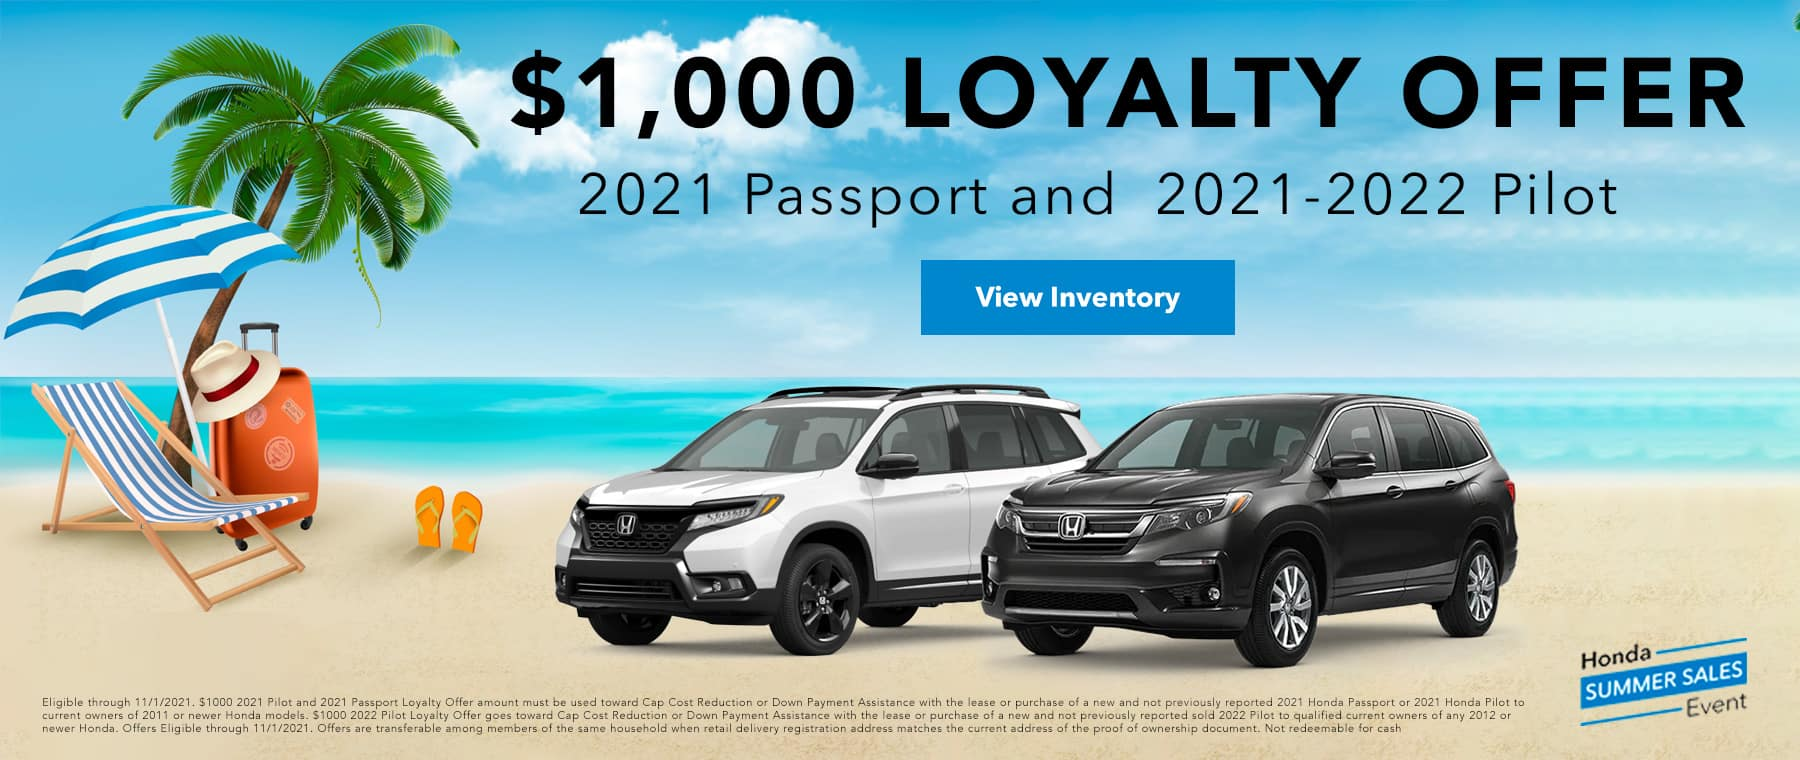 $1000 loyalty offer for 2021 passport and 2021 pilot and 2022 pilot